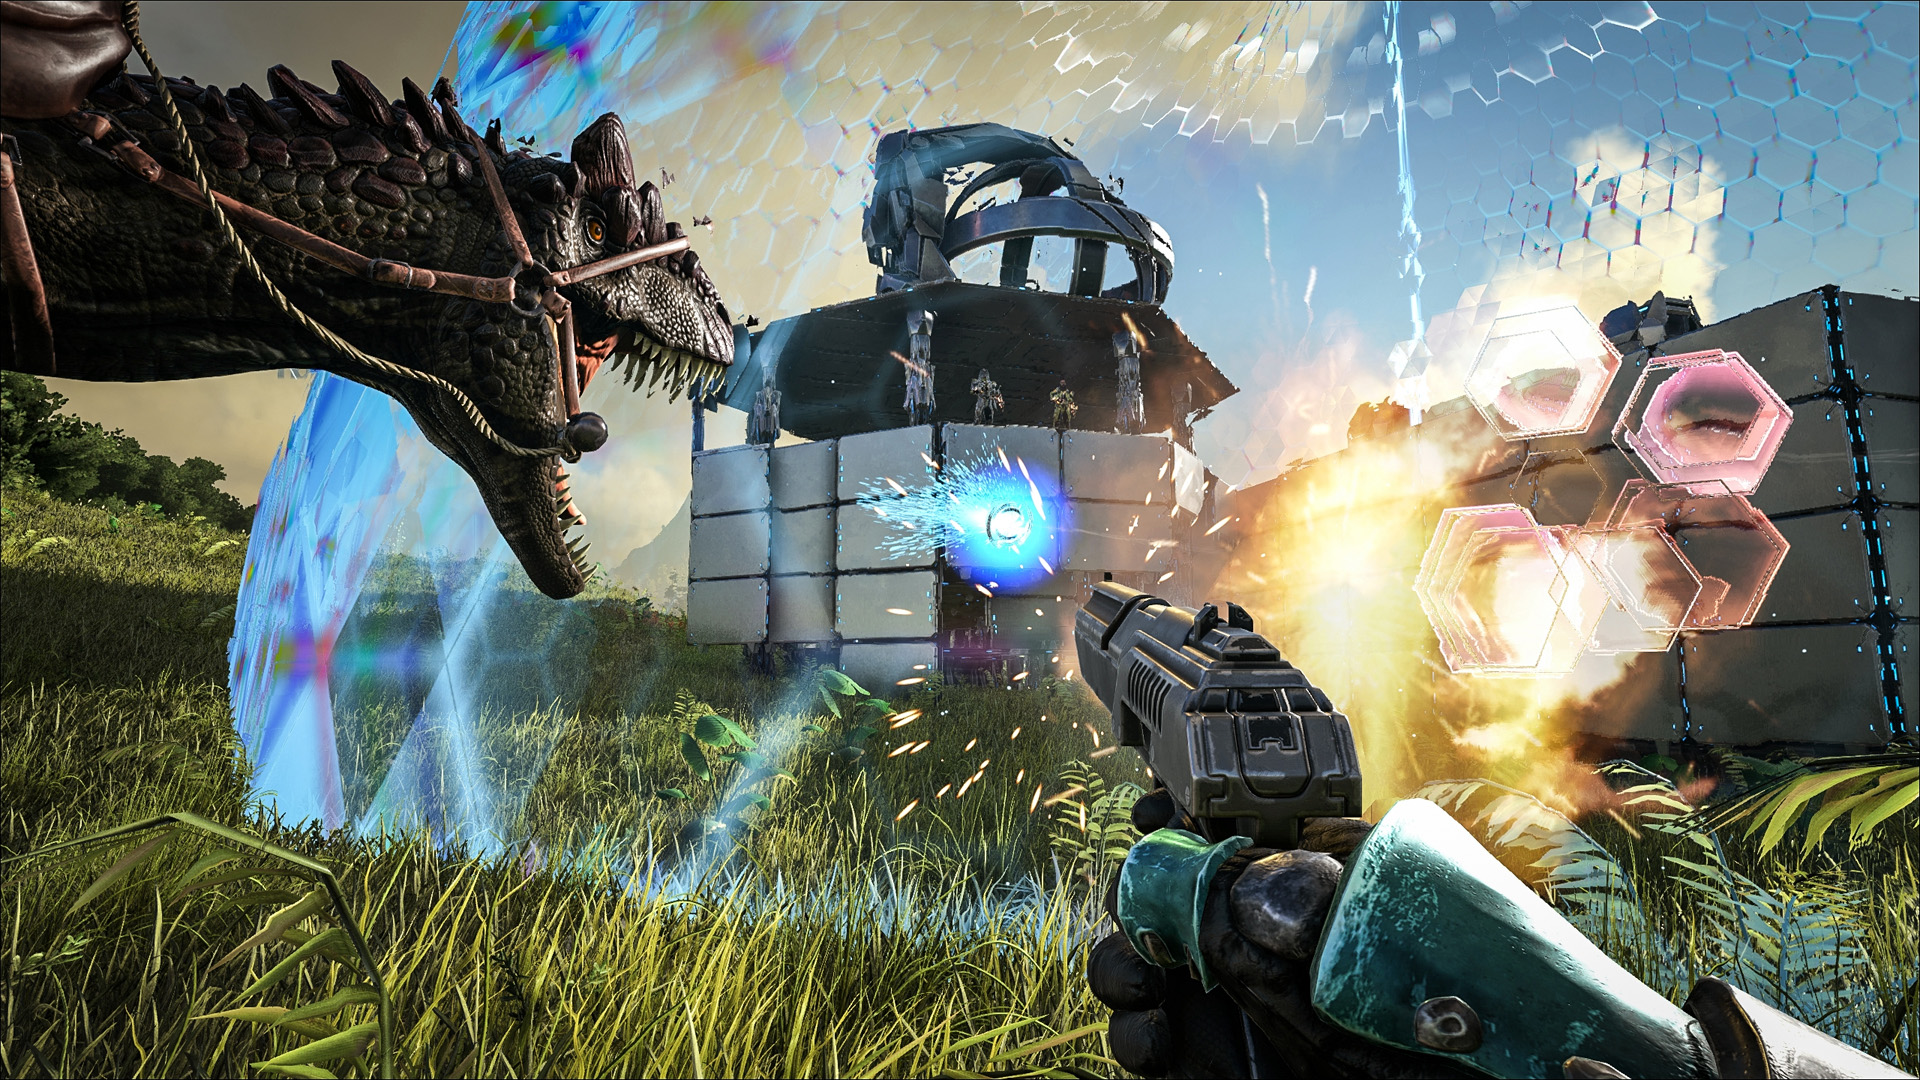 Official PVP servers for Ark: Survival Evolved announced